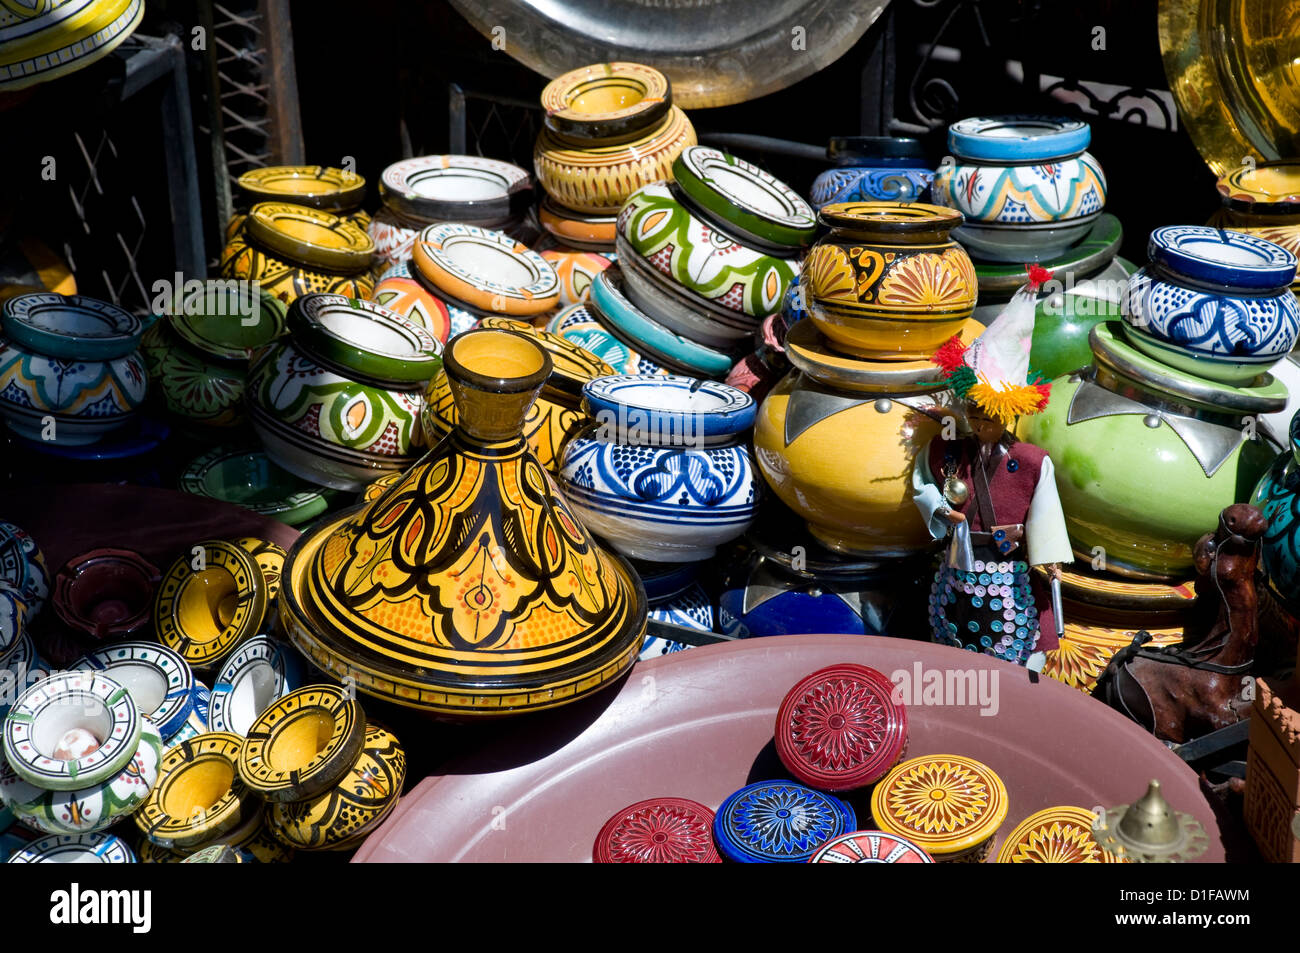 Colourful ceramic pots for sale in the souk in Marrakech, Morocco, North Africa, Africa - Stock Image